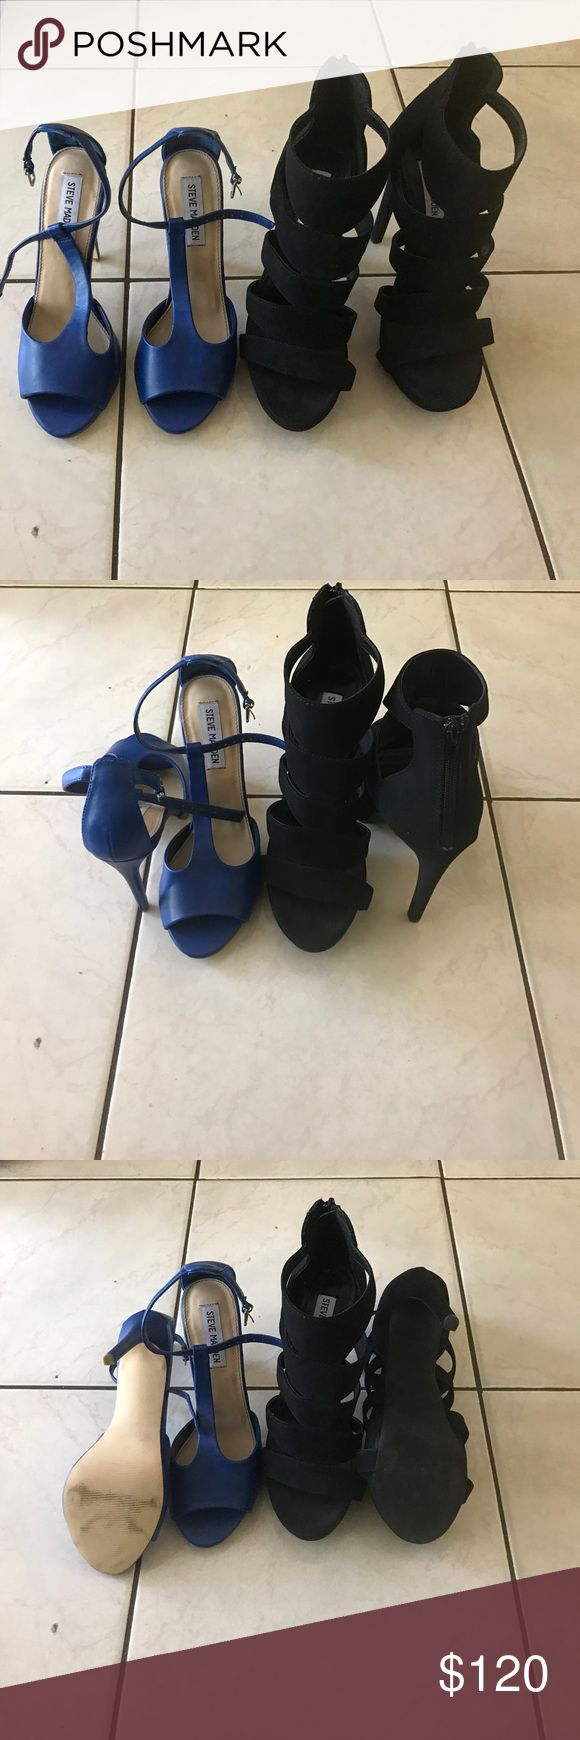 Steve Madden blue and black heels size 8 Steve Madden blue and black heels ready to wear for a night out in the town . Heels have been worn before , but in great condition . This is a bundle deal two heels for the price of one. 💃🏻🔥🔥🔥🔥 Steve Madden Shoes Heels